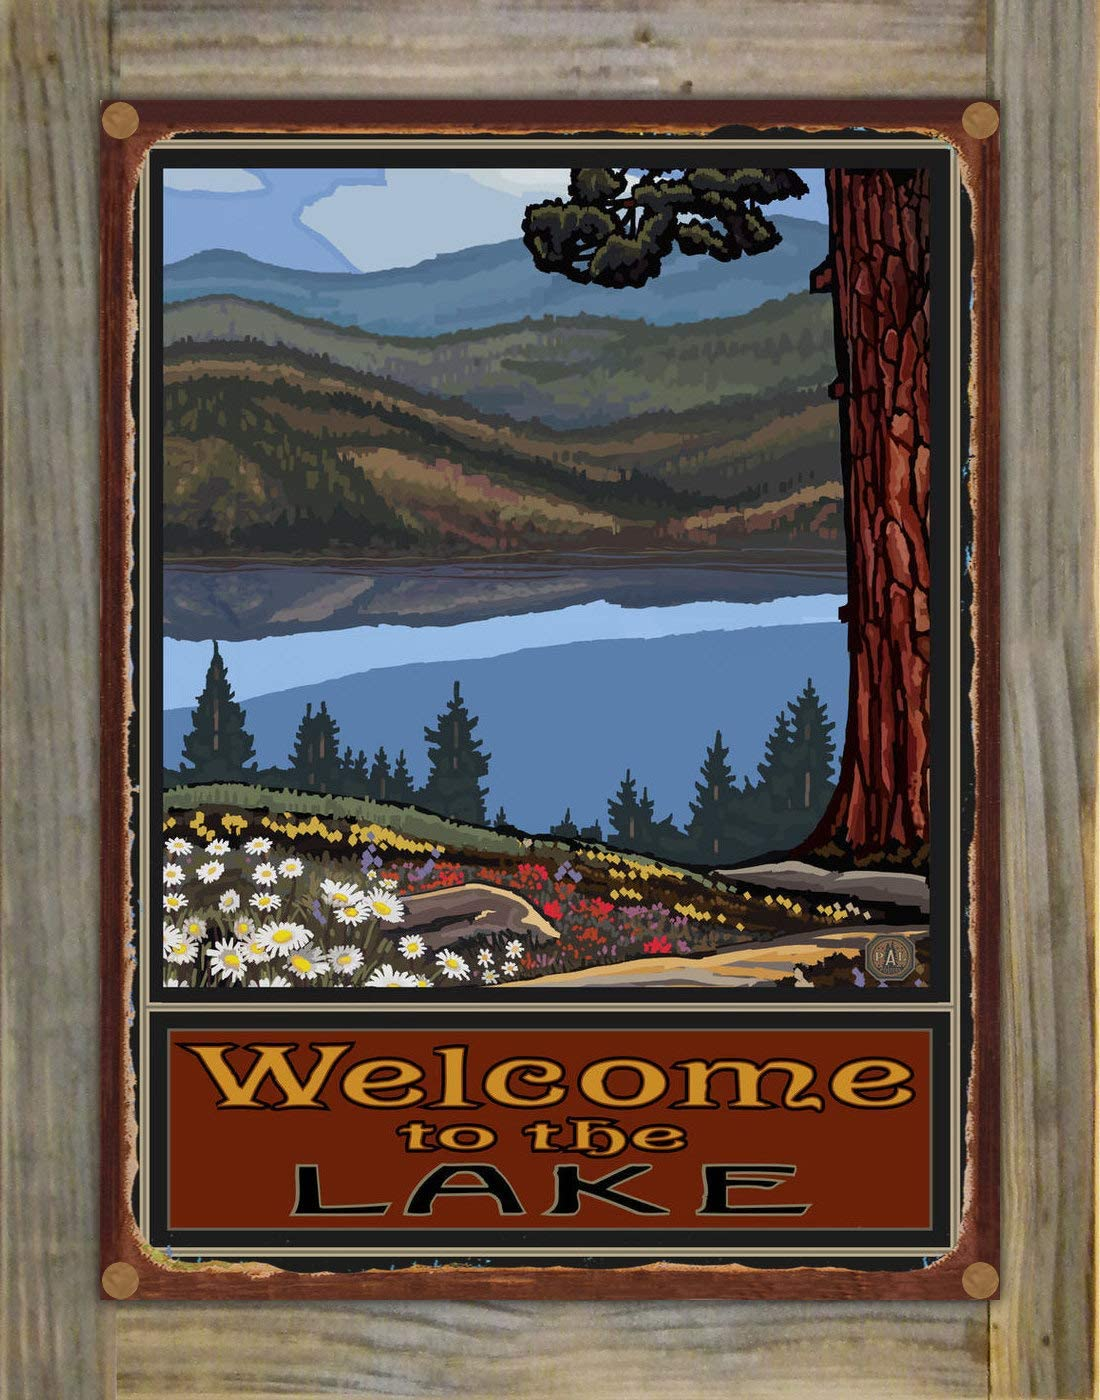 Northwest Art Mall Welcome to The Lake Lake Trails Big Hills Rustic Metal Print on Reclaimed Barn Wood from Original Travel Artwork by Artist Paul A. Lanquist 9 x 12